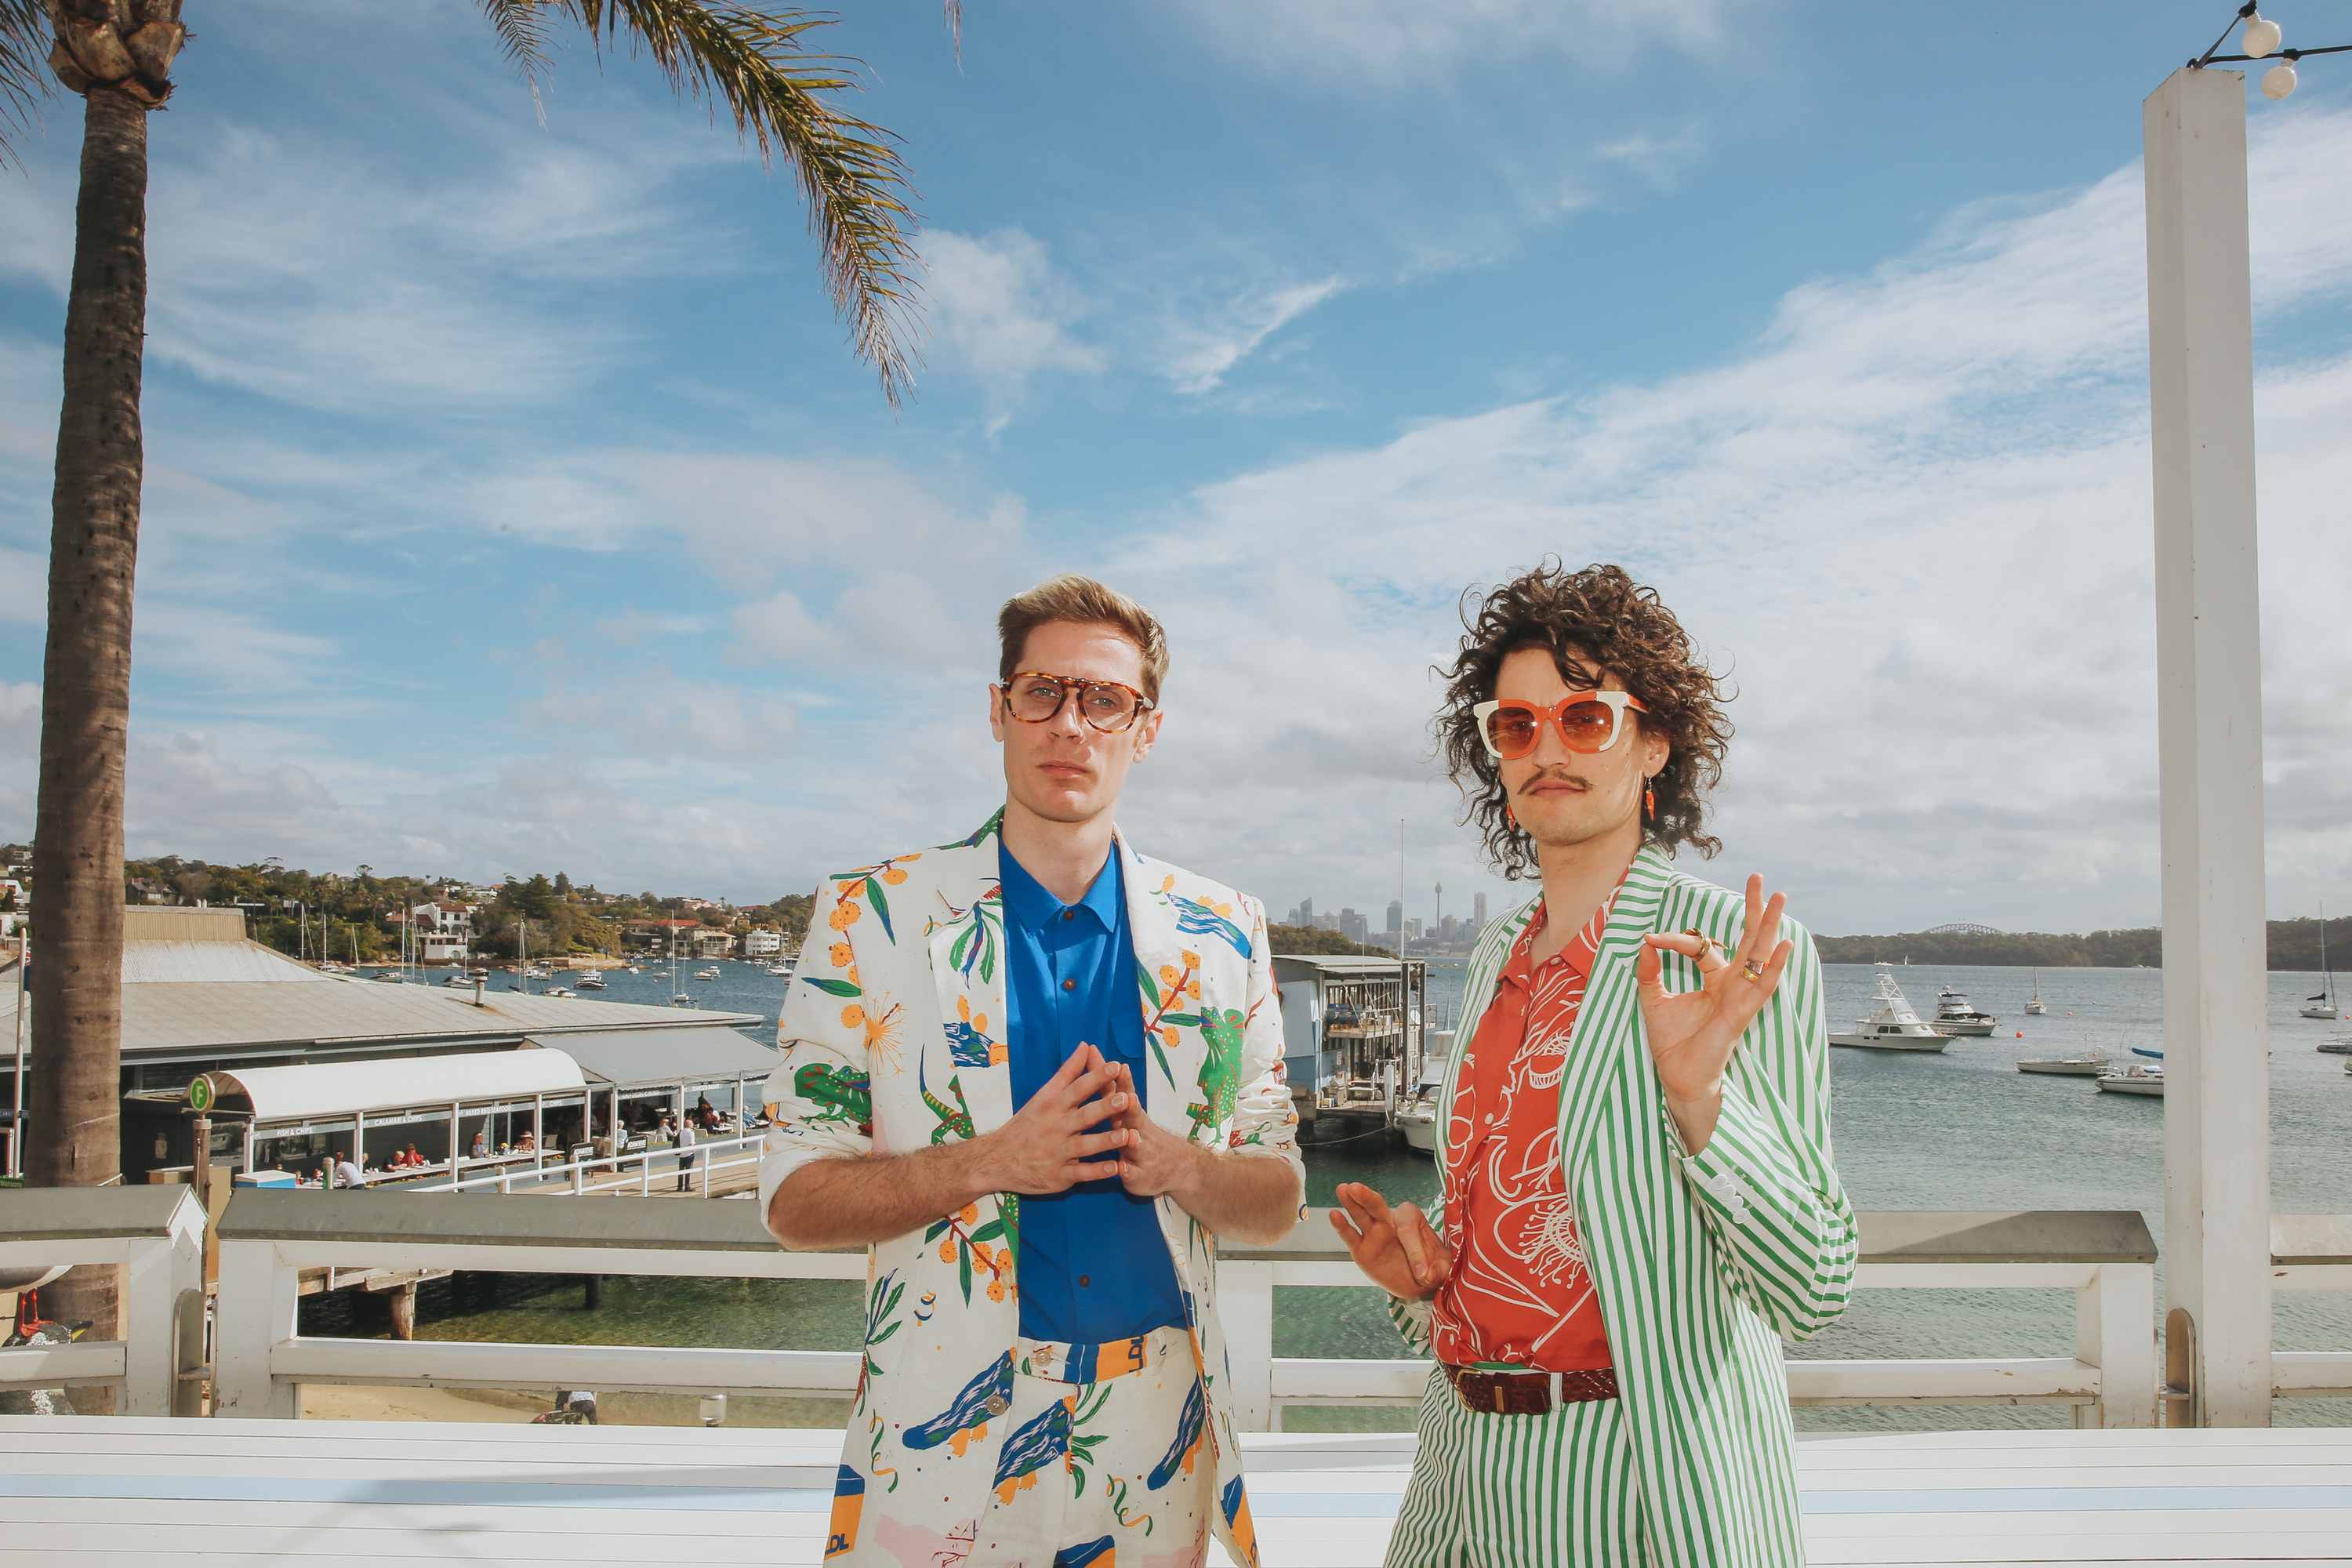 The band members stand on a deck in front of the beach.